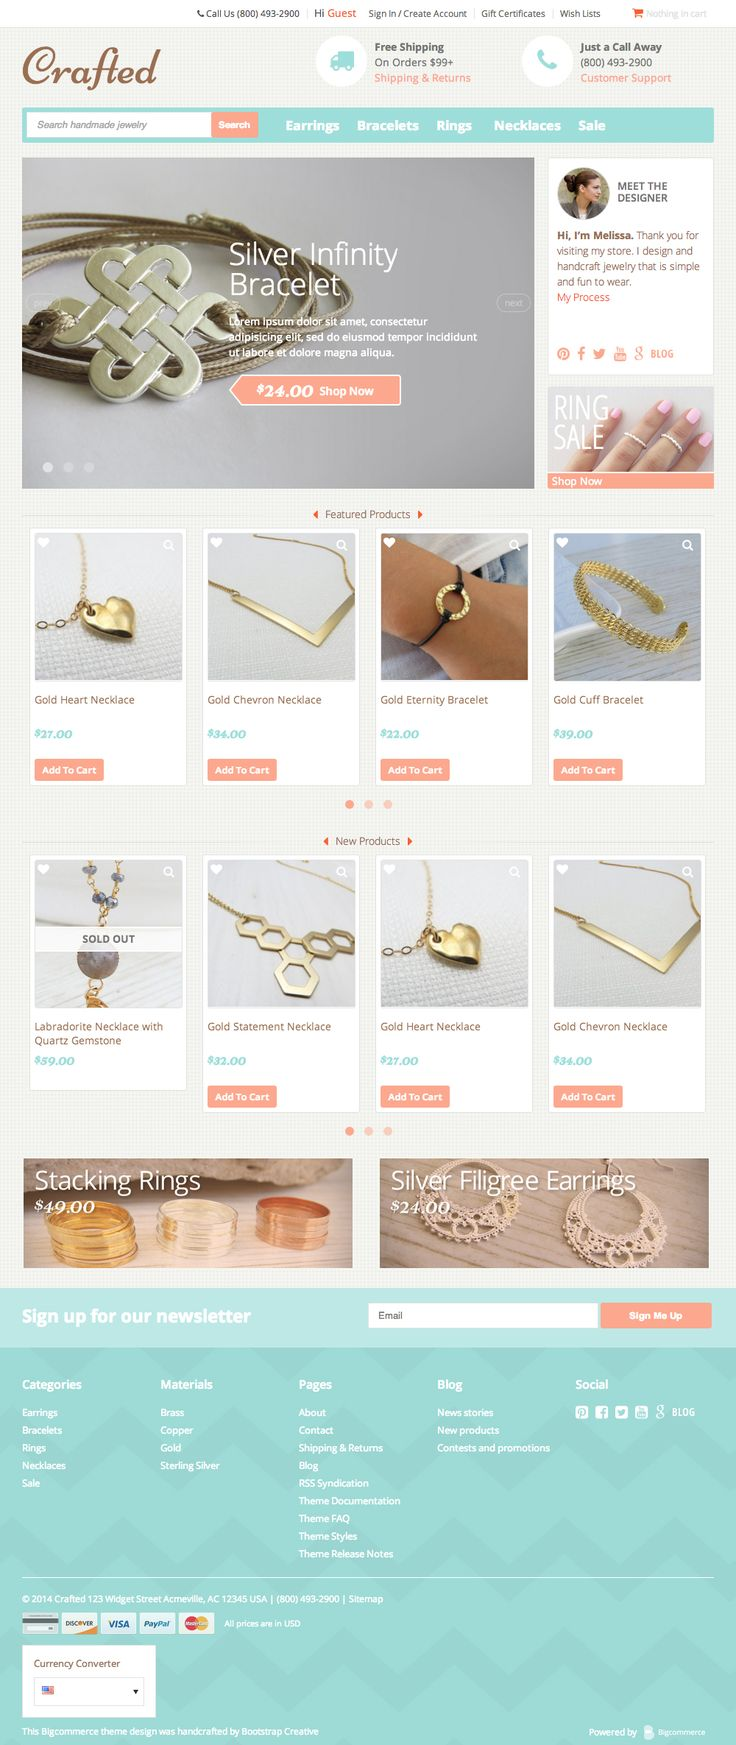 Ecommerce website template Crafted is designed to help makers of handmade and boutique products create their own online store. #CraftedTemplates